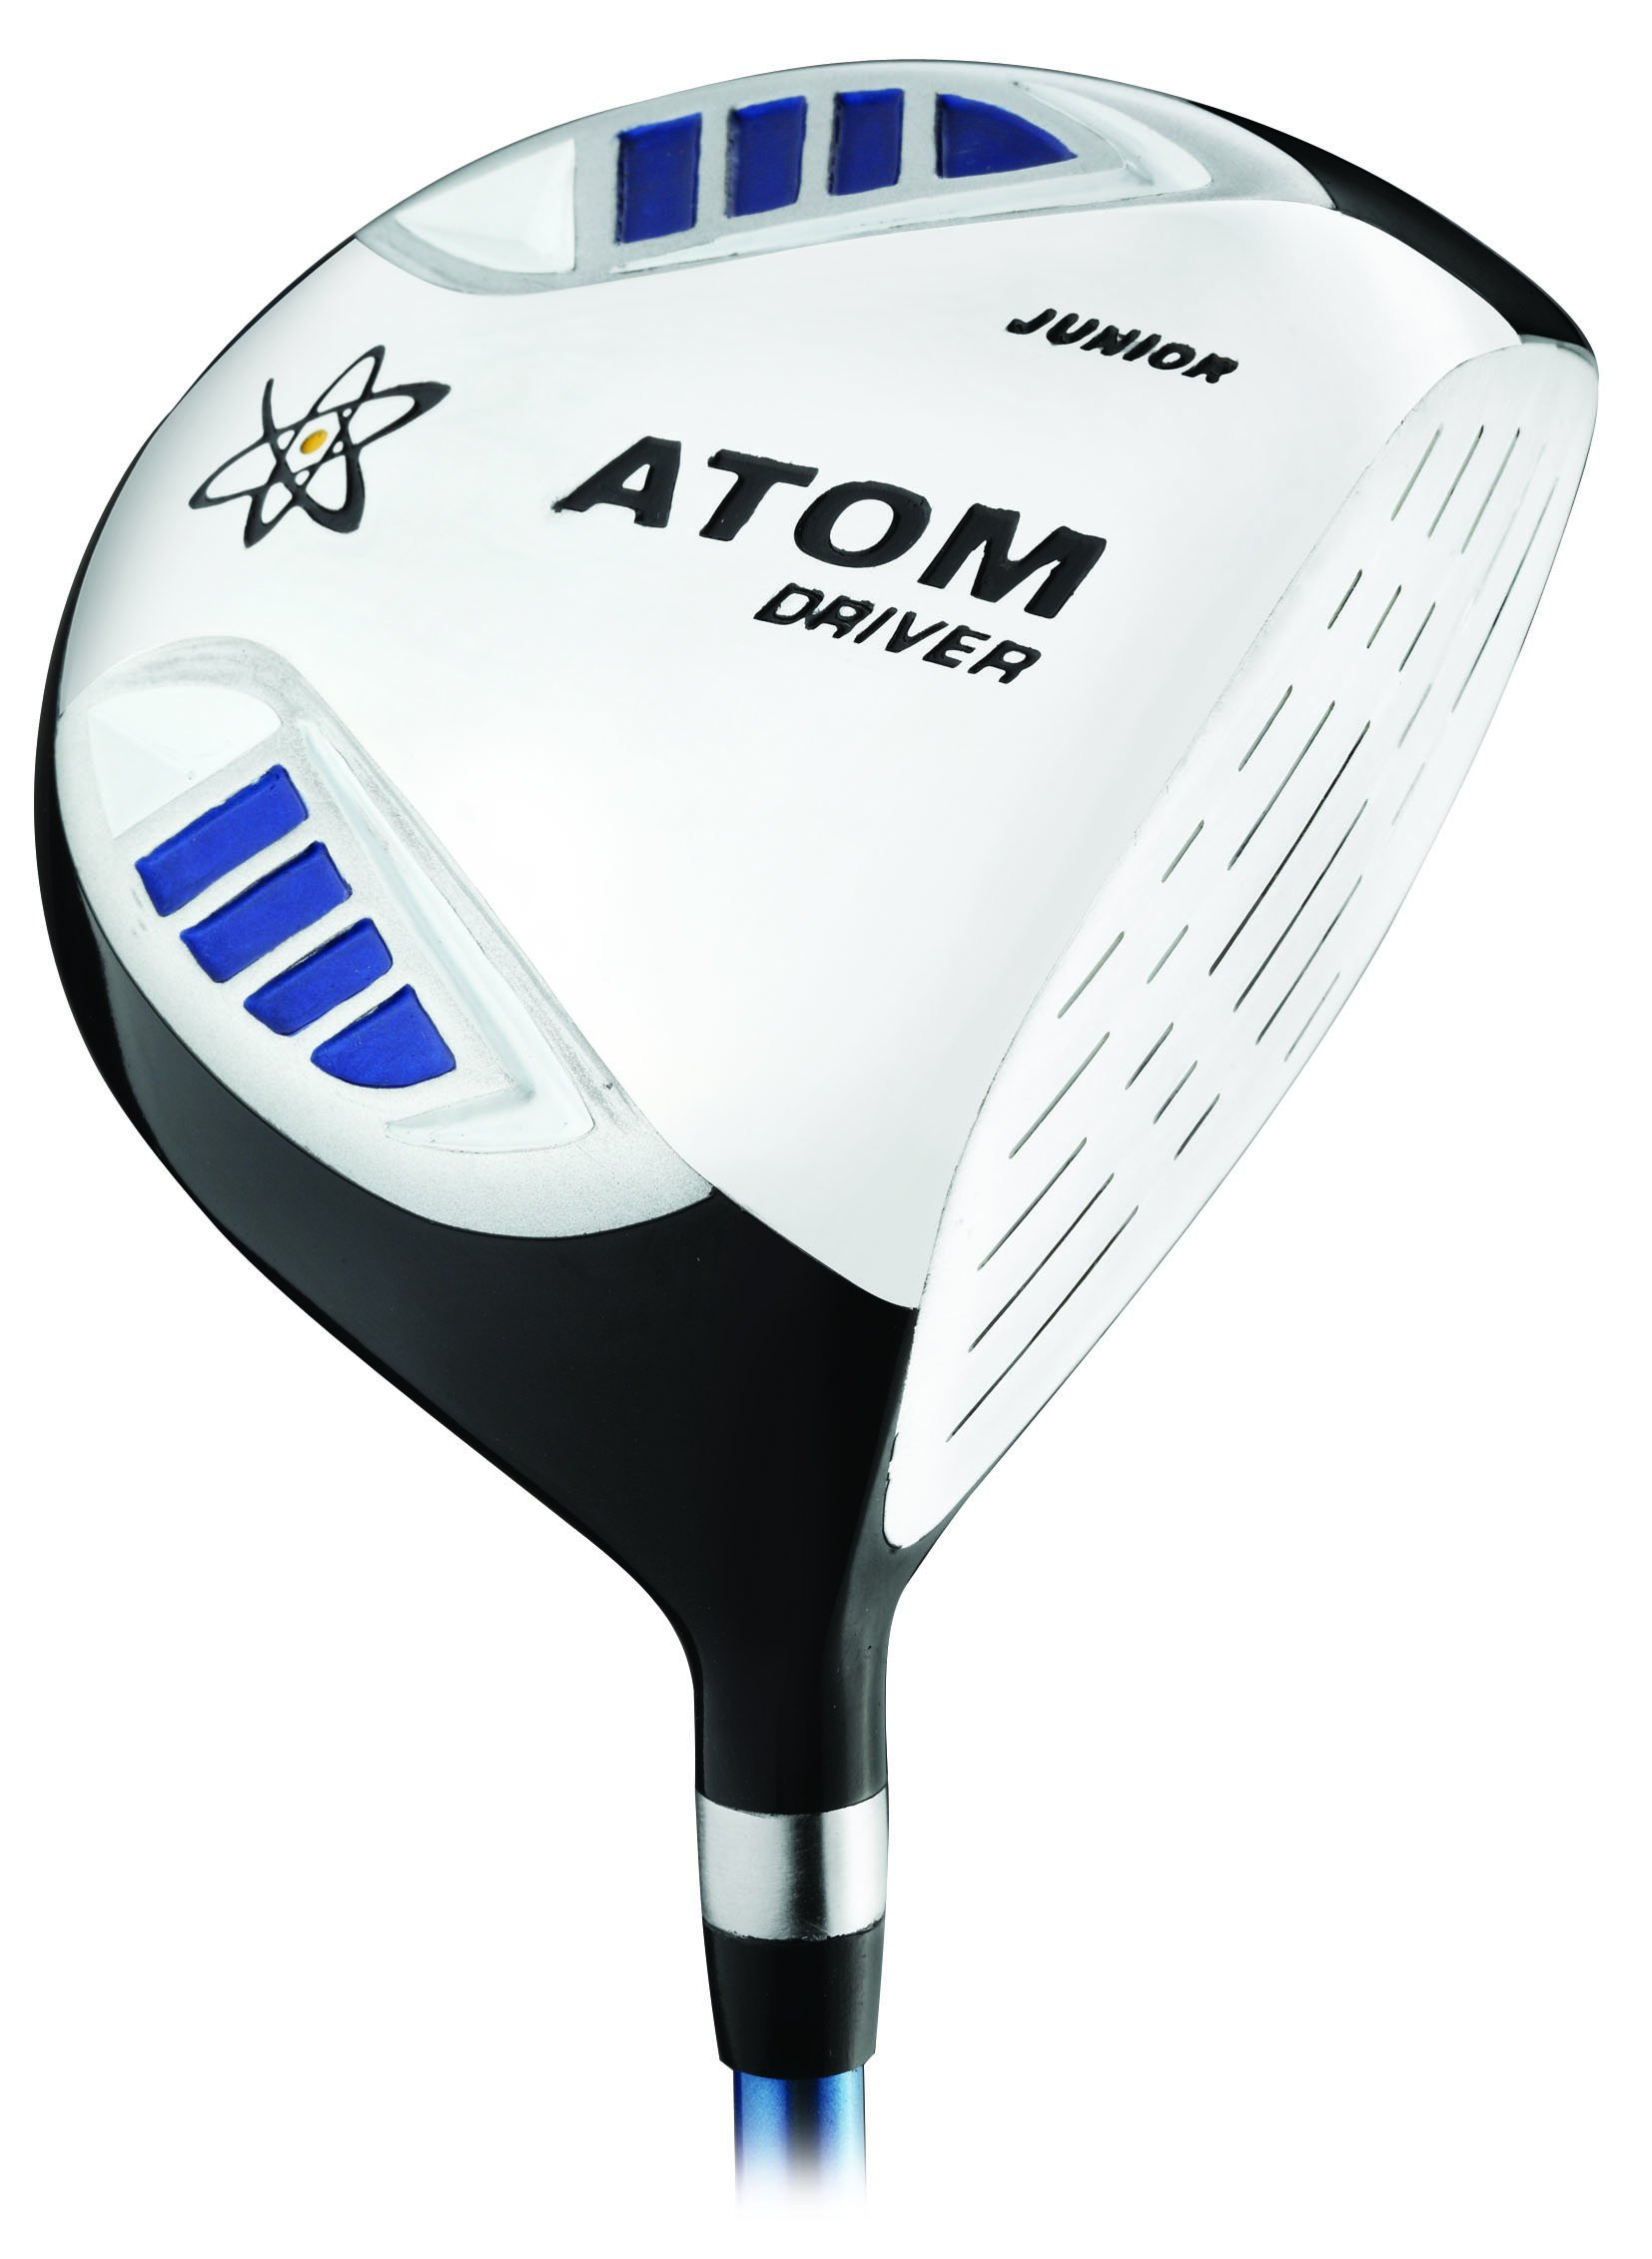 Founders Club Atom Complete Junior Golf Set, Youth 54-63'' Tall, Ages 10-13, Right-Handed by Founders Club (Image #2)